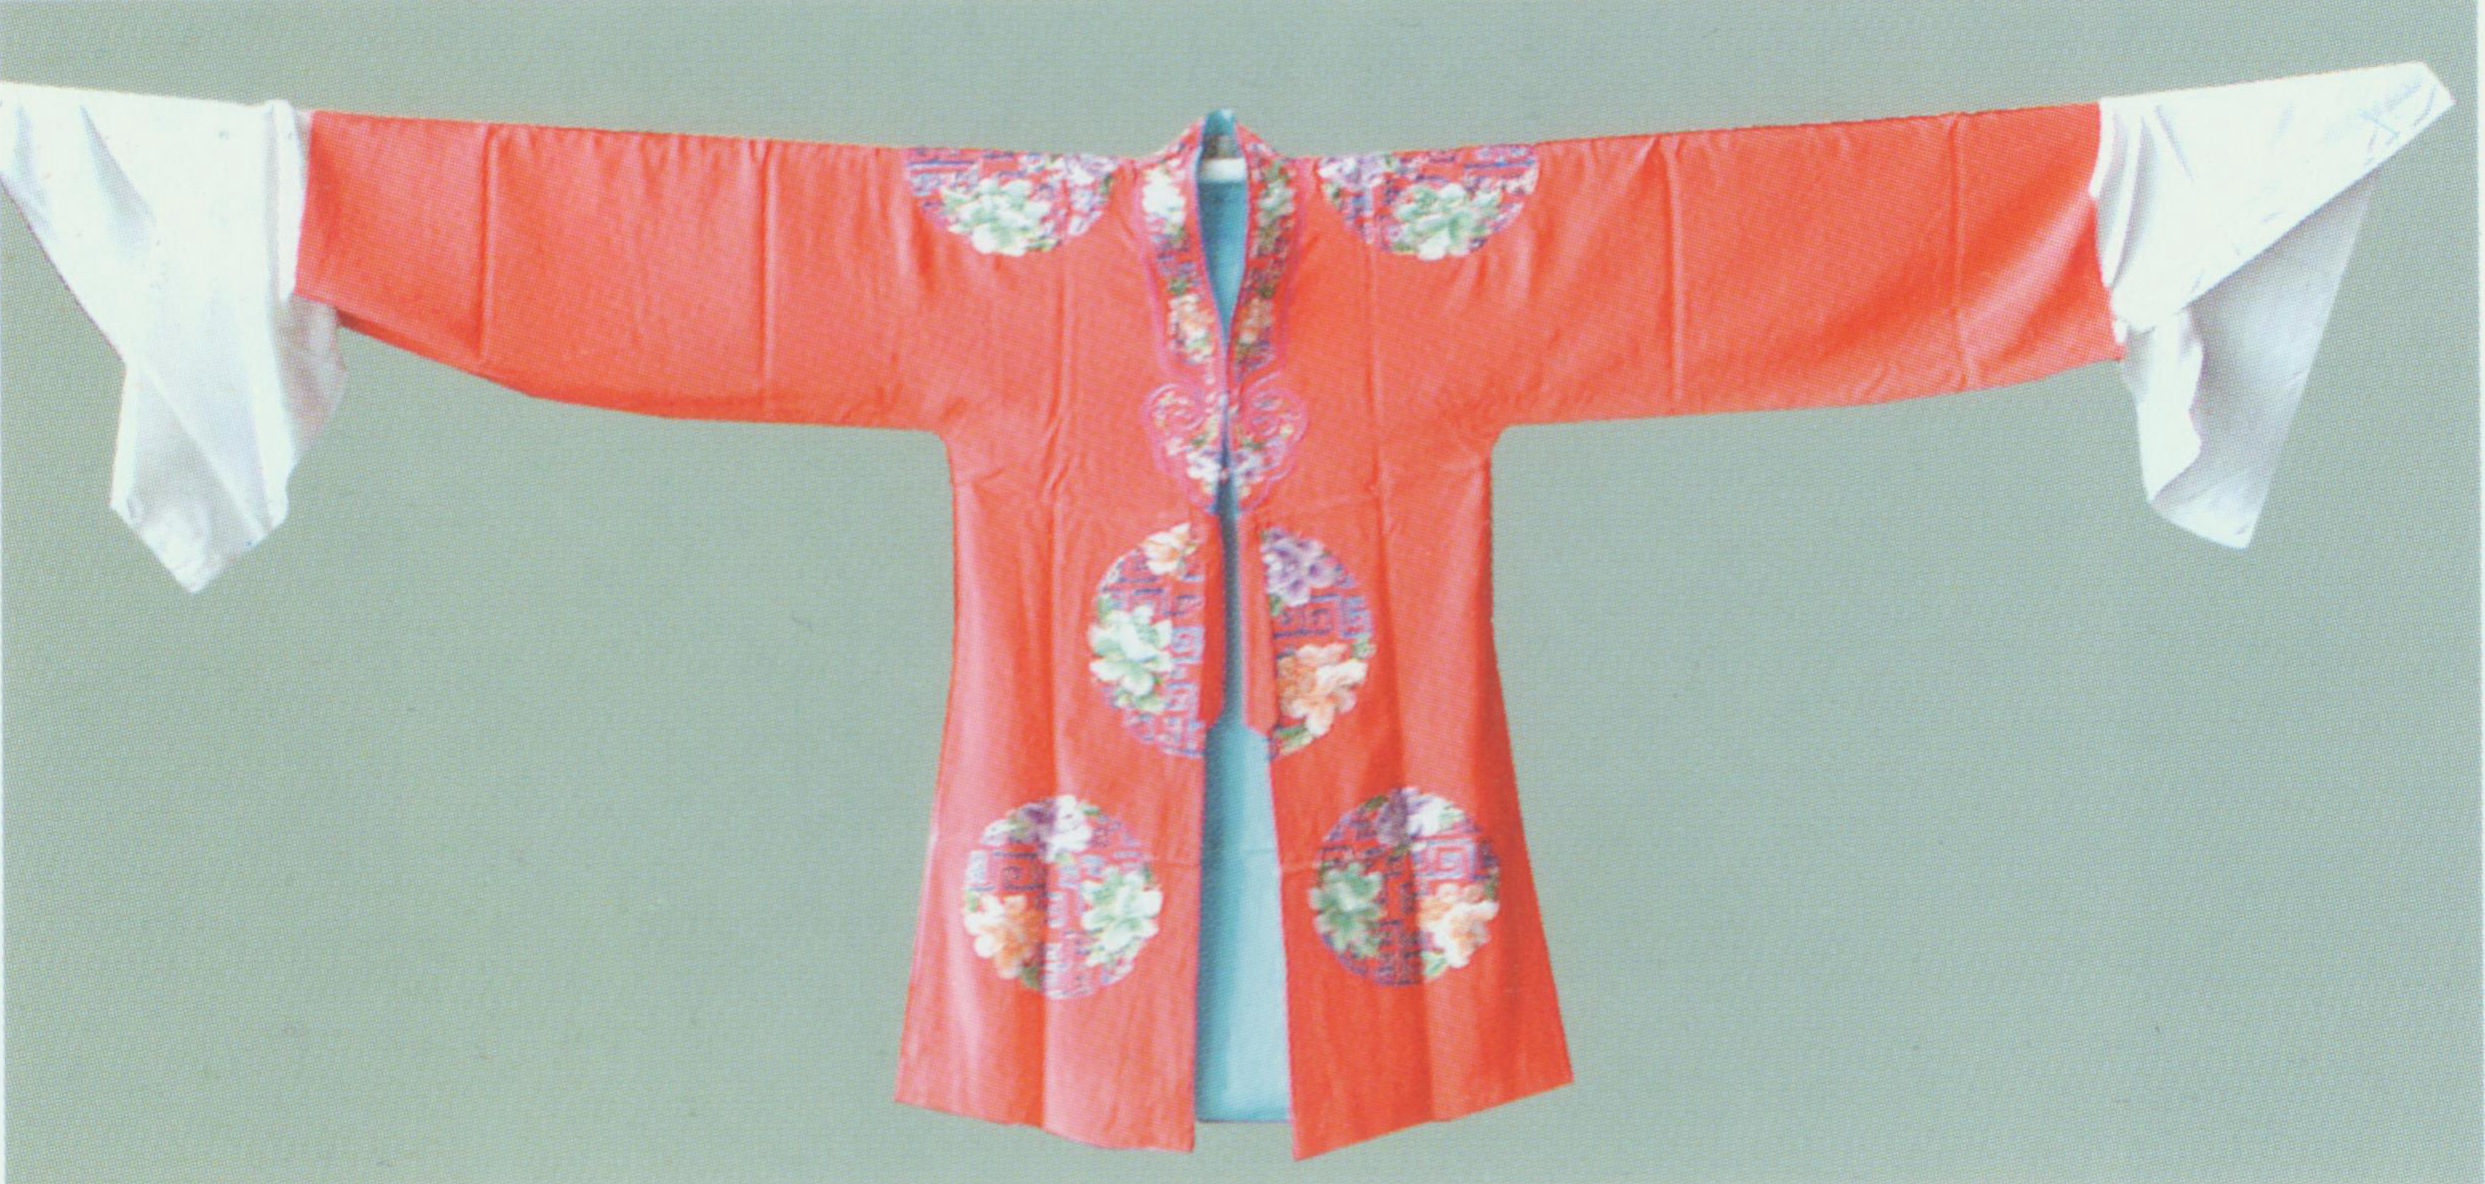 The Pair of Red Robes (Men and Women) Costume .   The pair of is distinguished by its embroidered patterns like flowers in round frame, Chinese frets and rattans. Typically, officials and young ladies will wear red robes when they get married or have reunion. For example, Zhao Chong and Gui Zhi wear a pair of read robe in  The Story of Selling Horses .